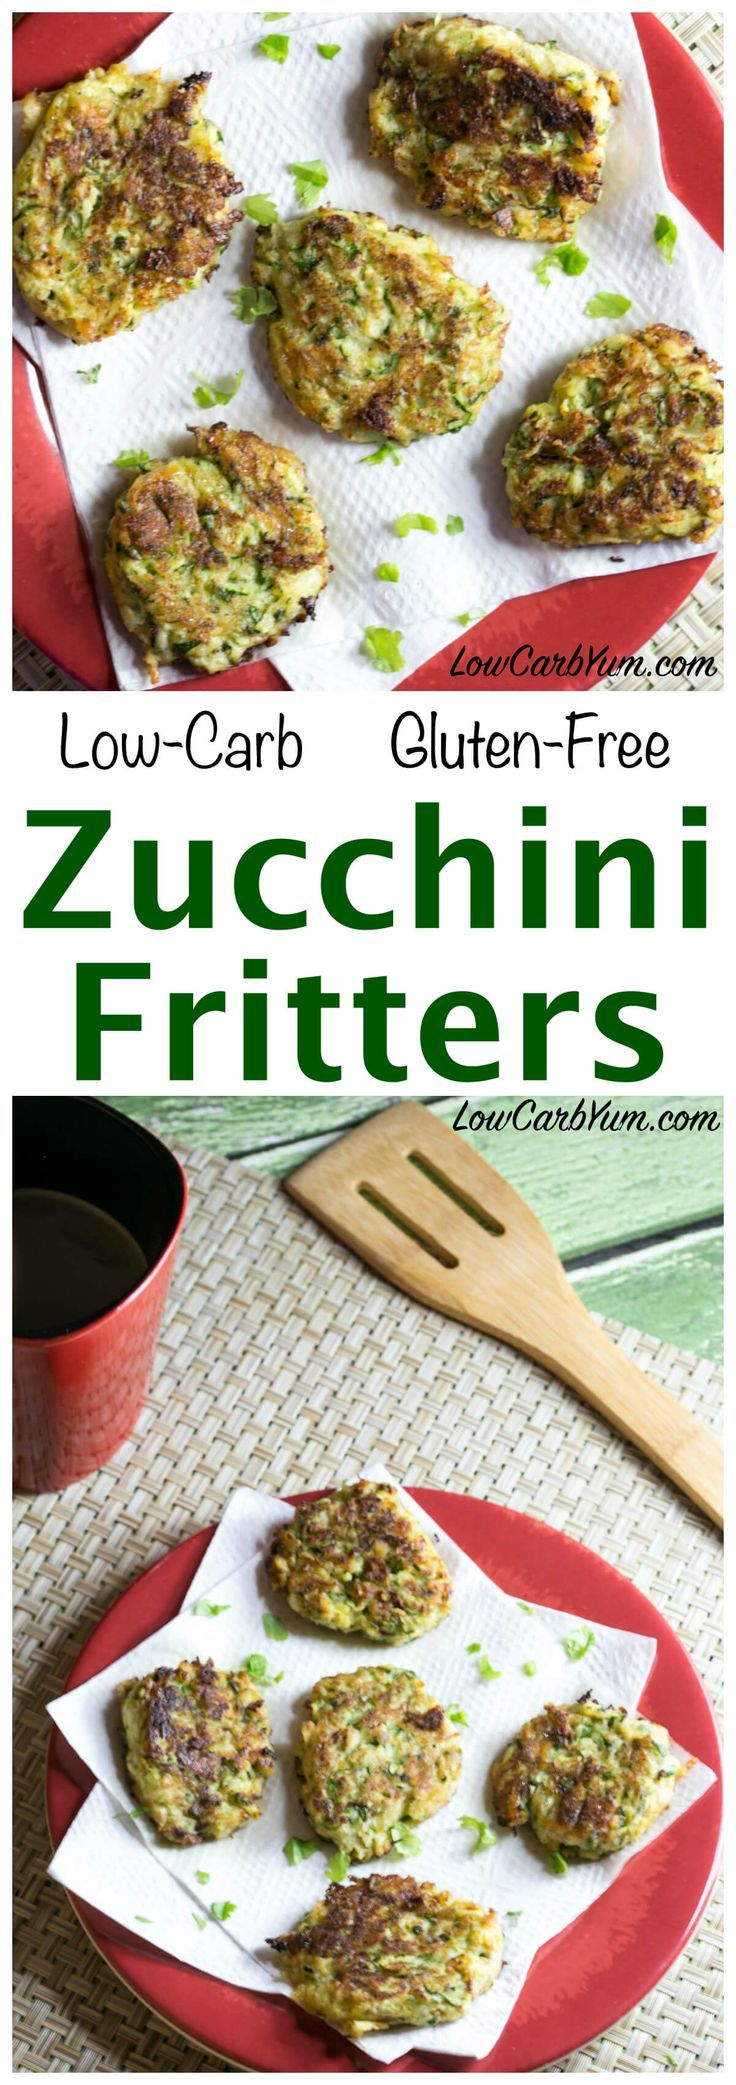 You will love these healthier coconut flour zucchini fritters made low carb and gluten free. Serve them as an appetizer or a side to compliment your meal. LCHF Keto Atkins Recipe